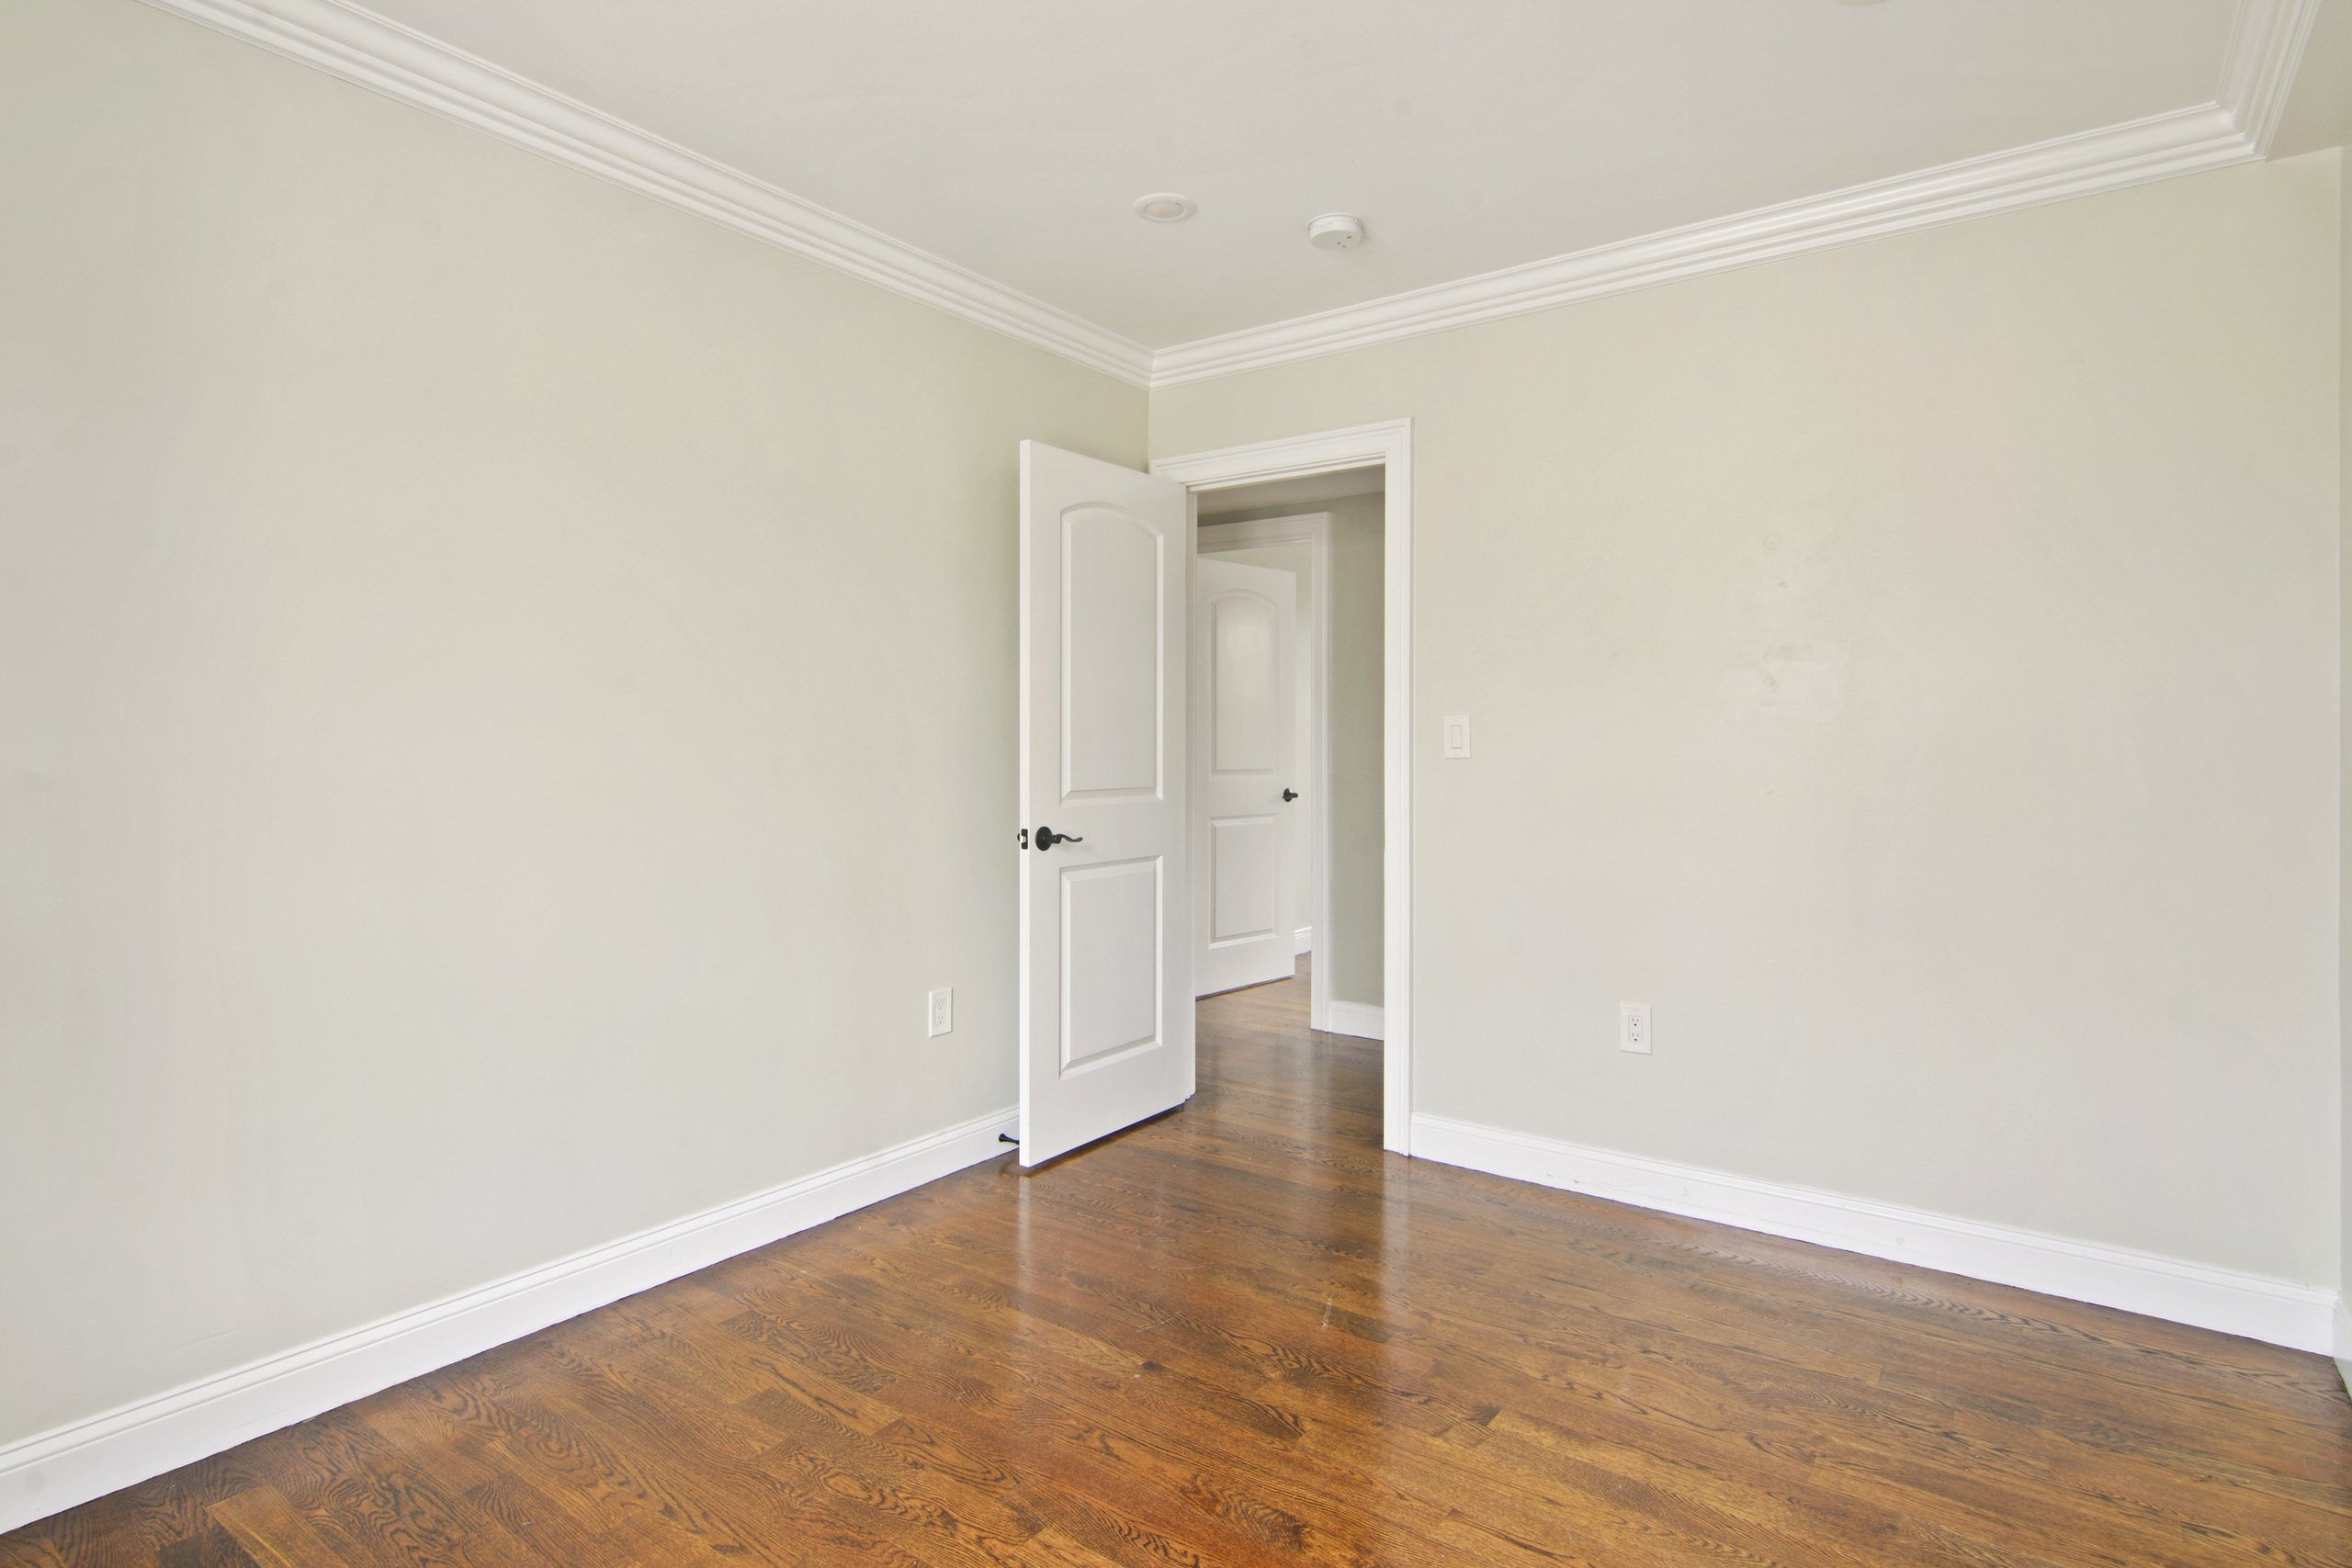 Photo of Queen room A (can be furnished or unfurnished) room June Homes